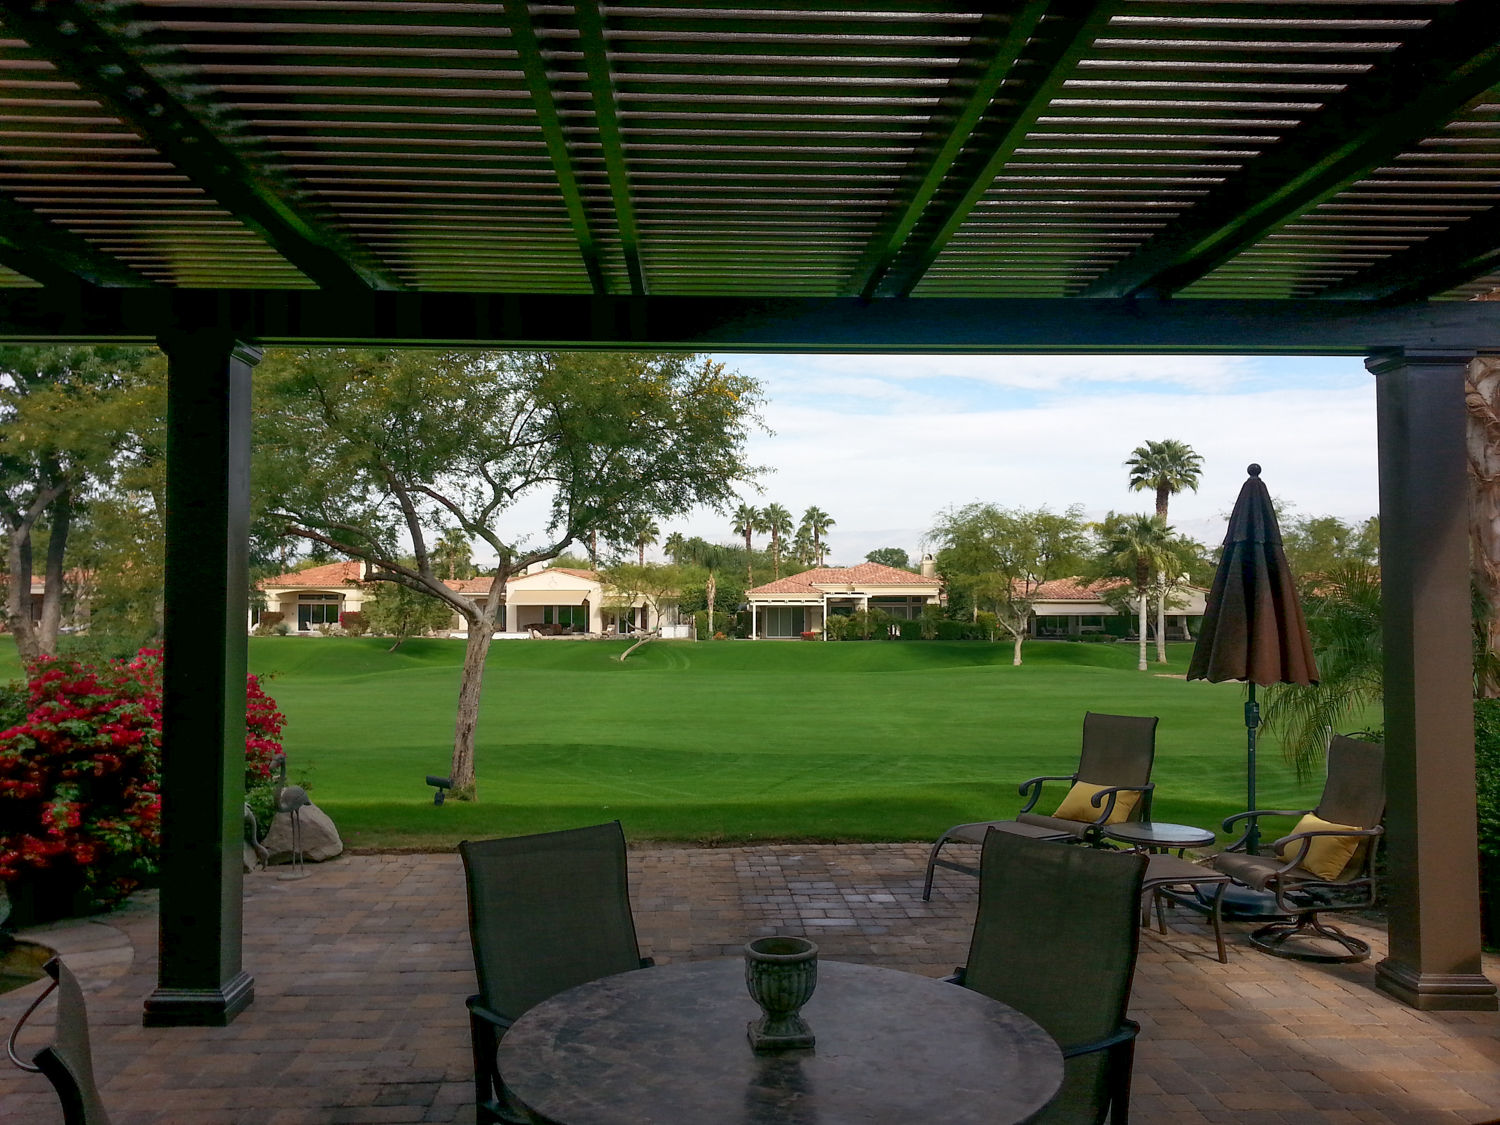 Aluminum Dash Weatherwood Patio Cover, Fully Closed, Palm Desert, CA